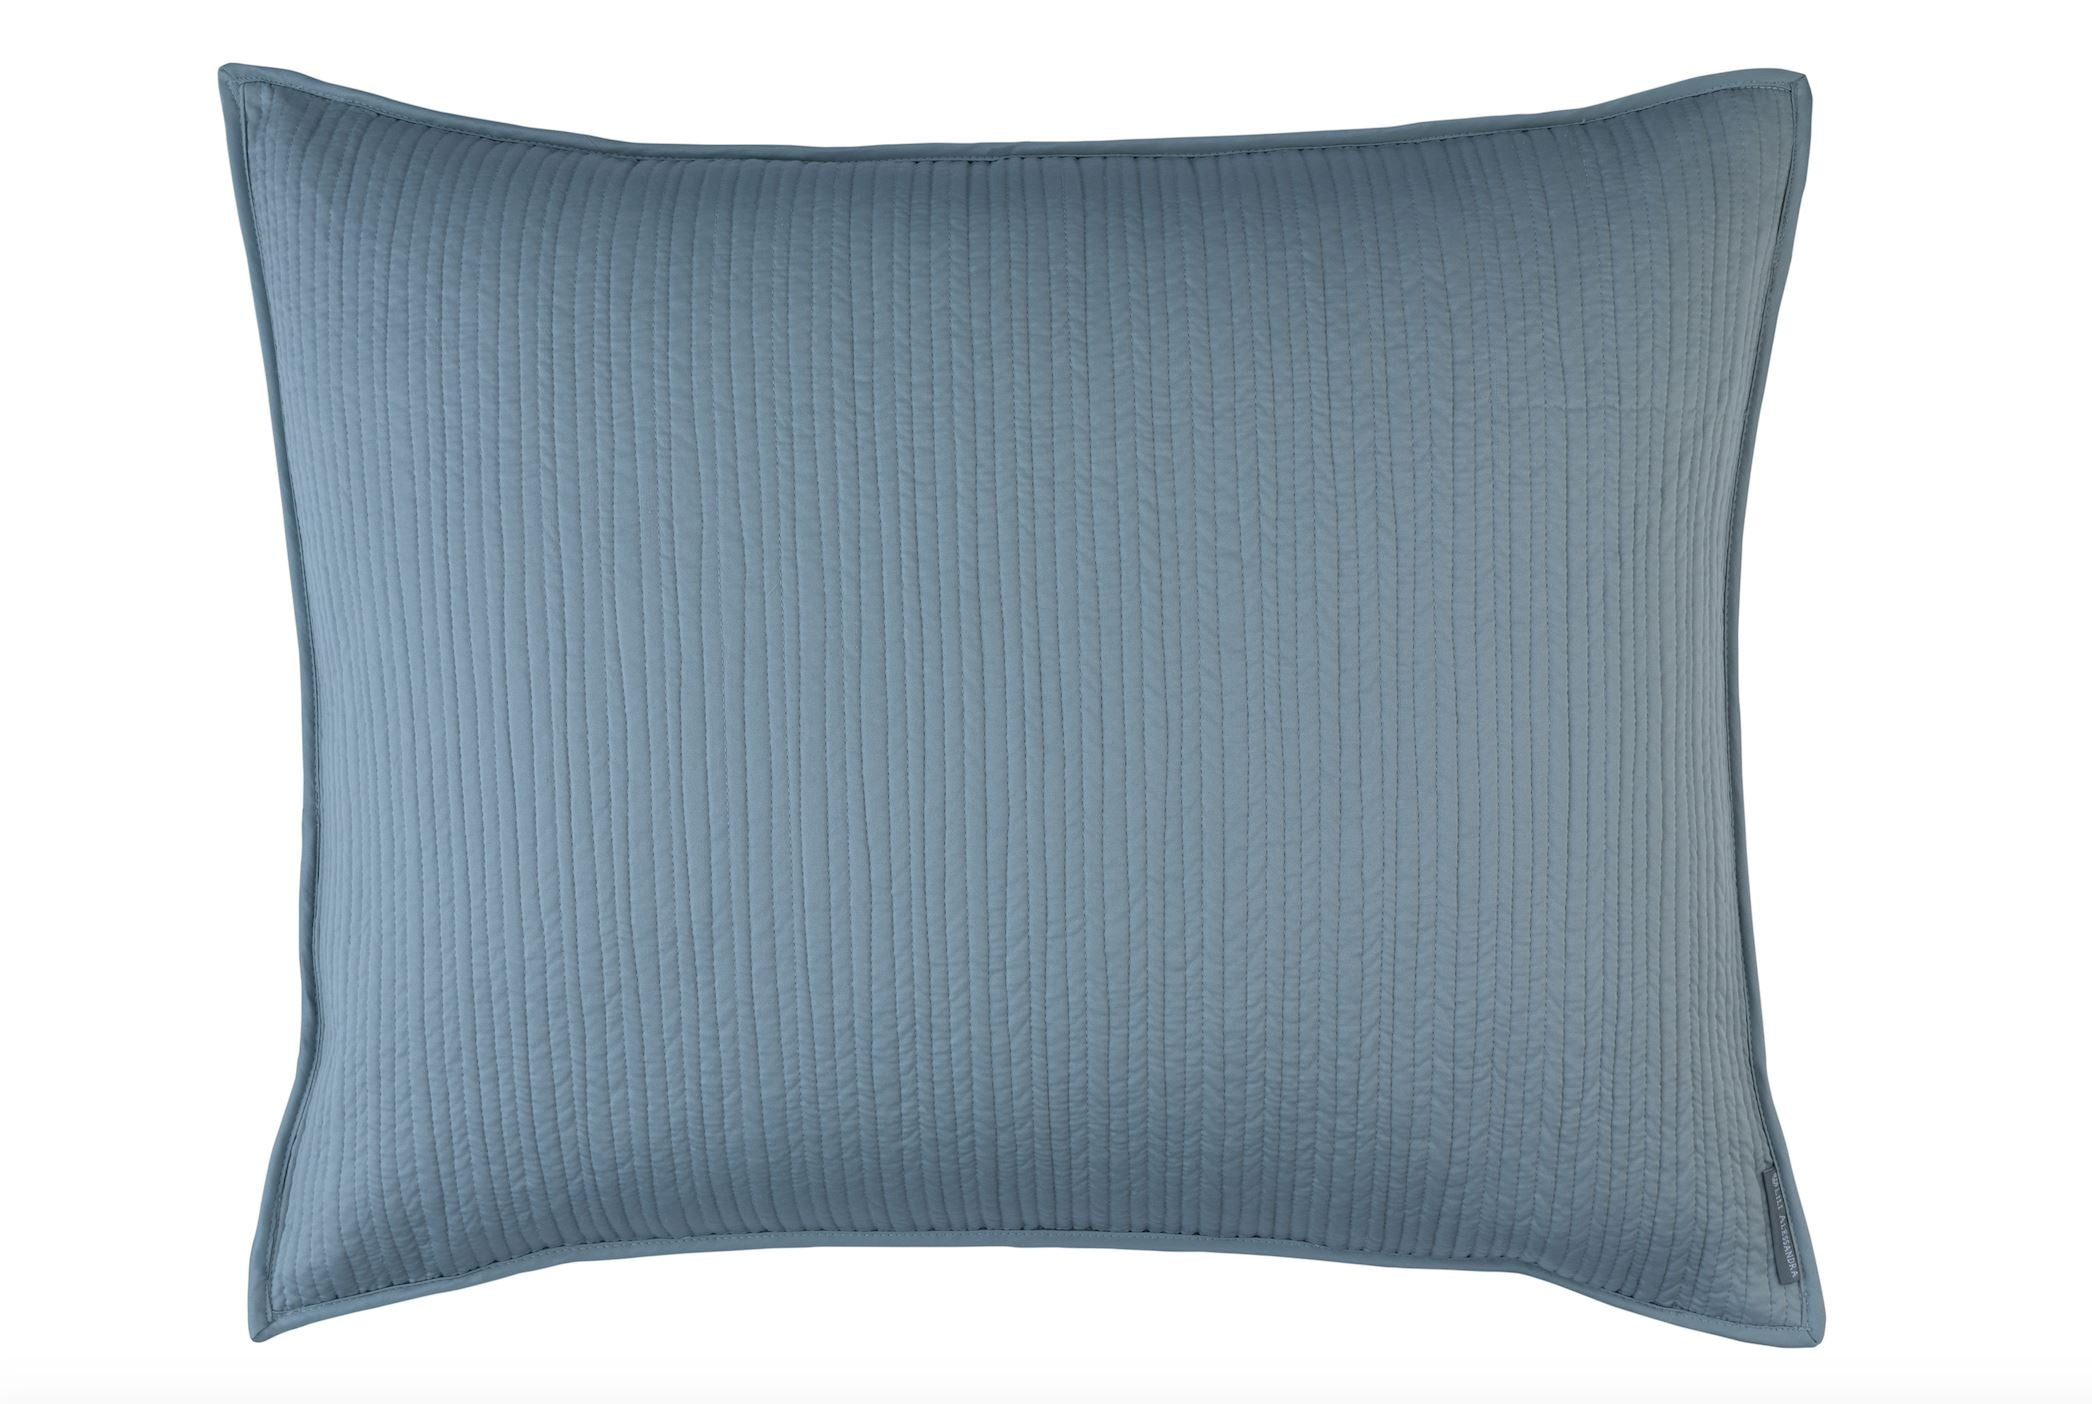 Lili Alessandra Retro Blue standard pillow